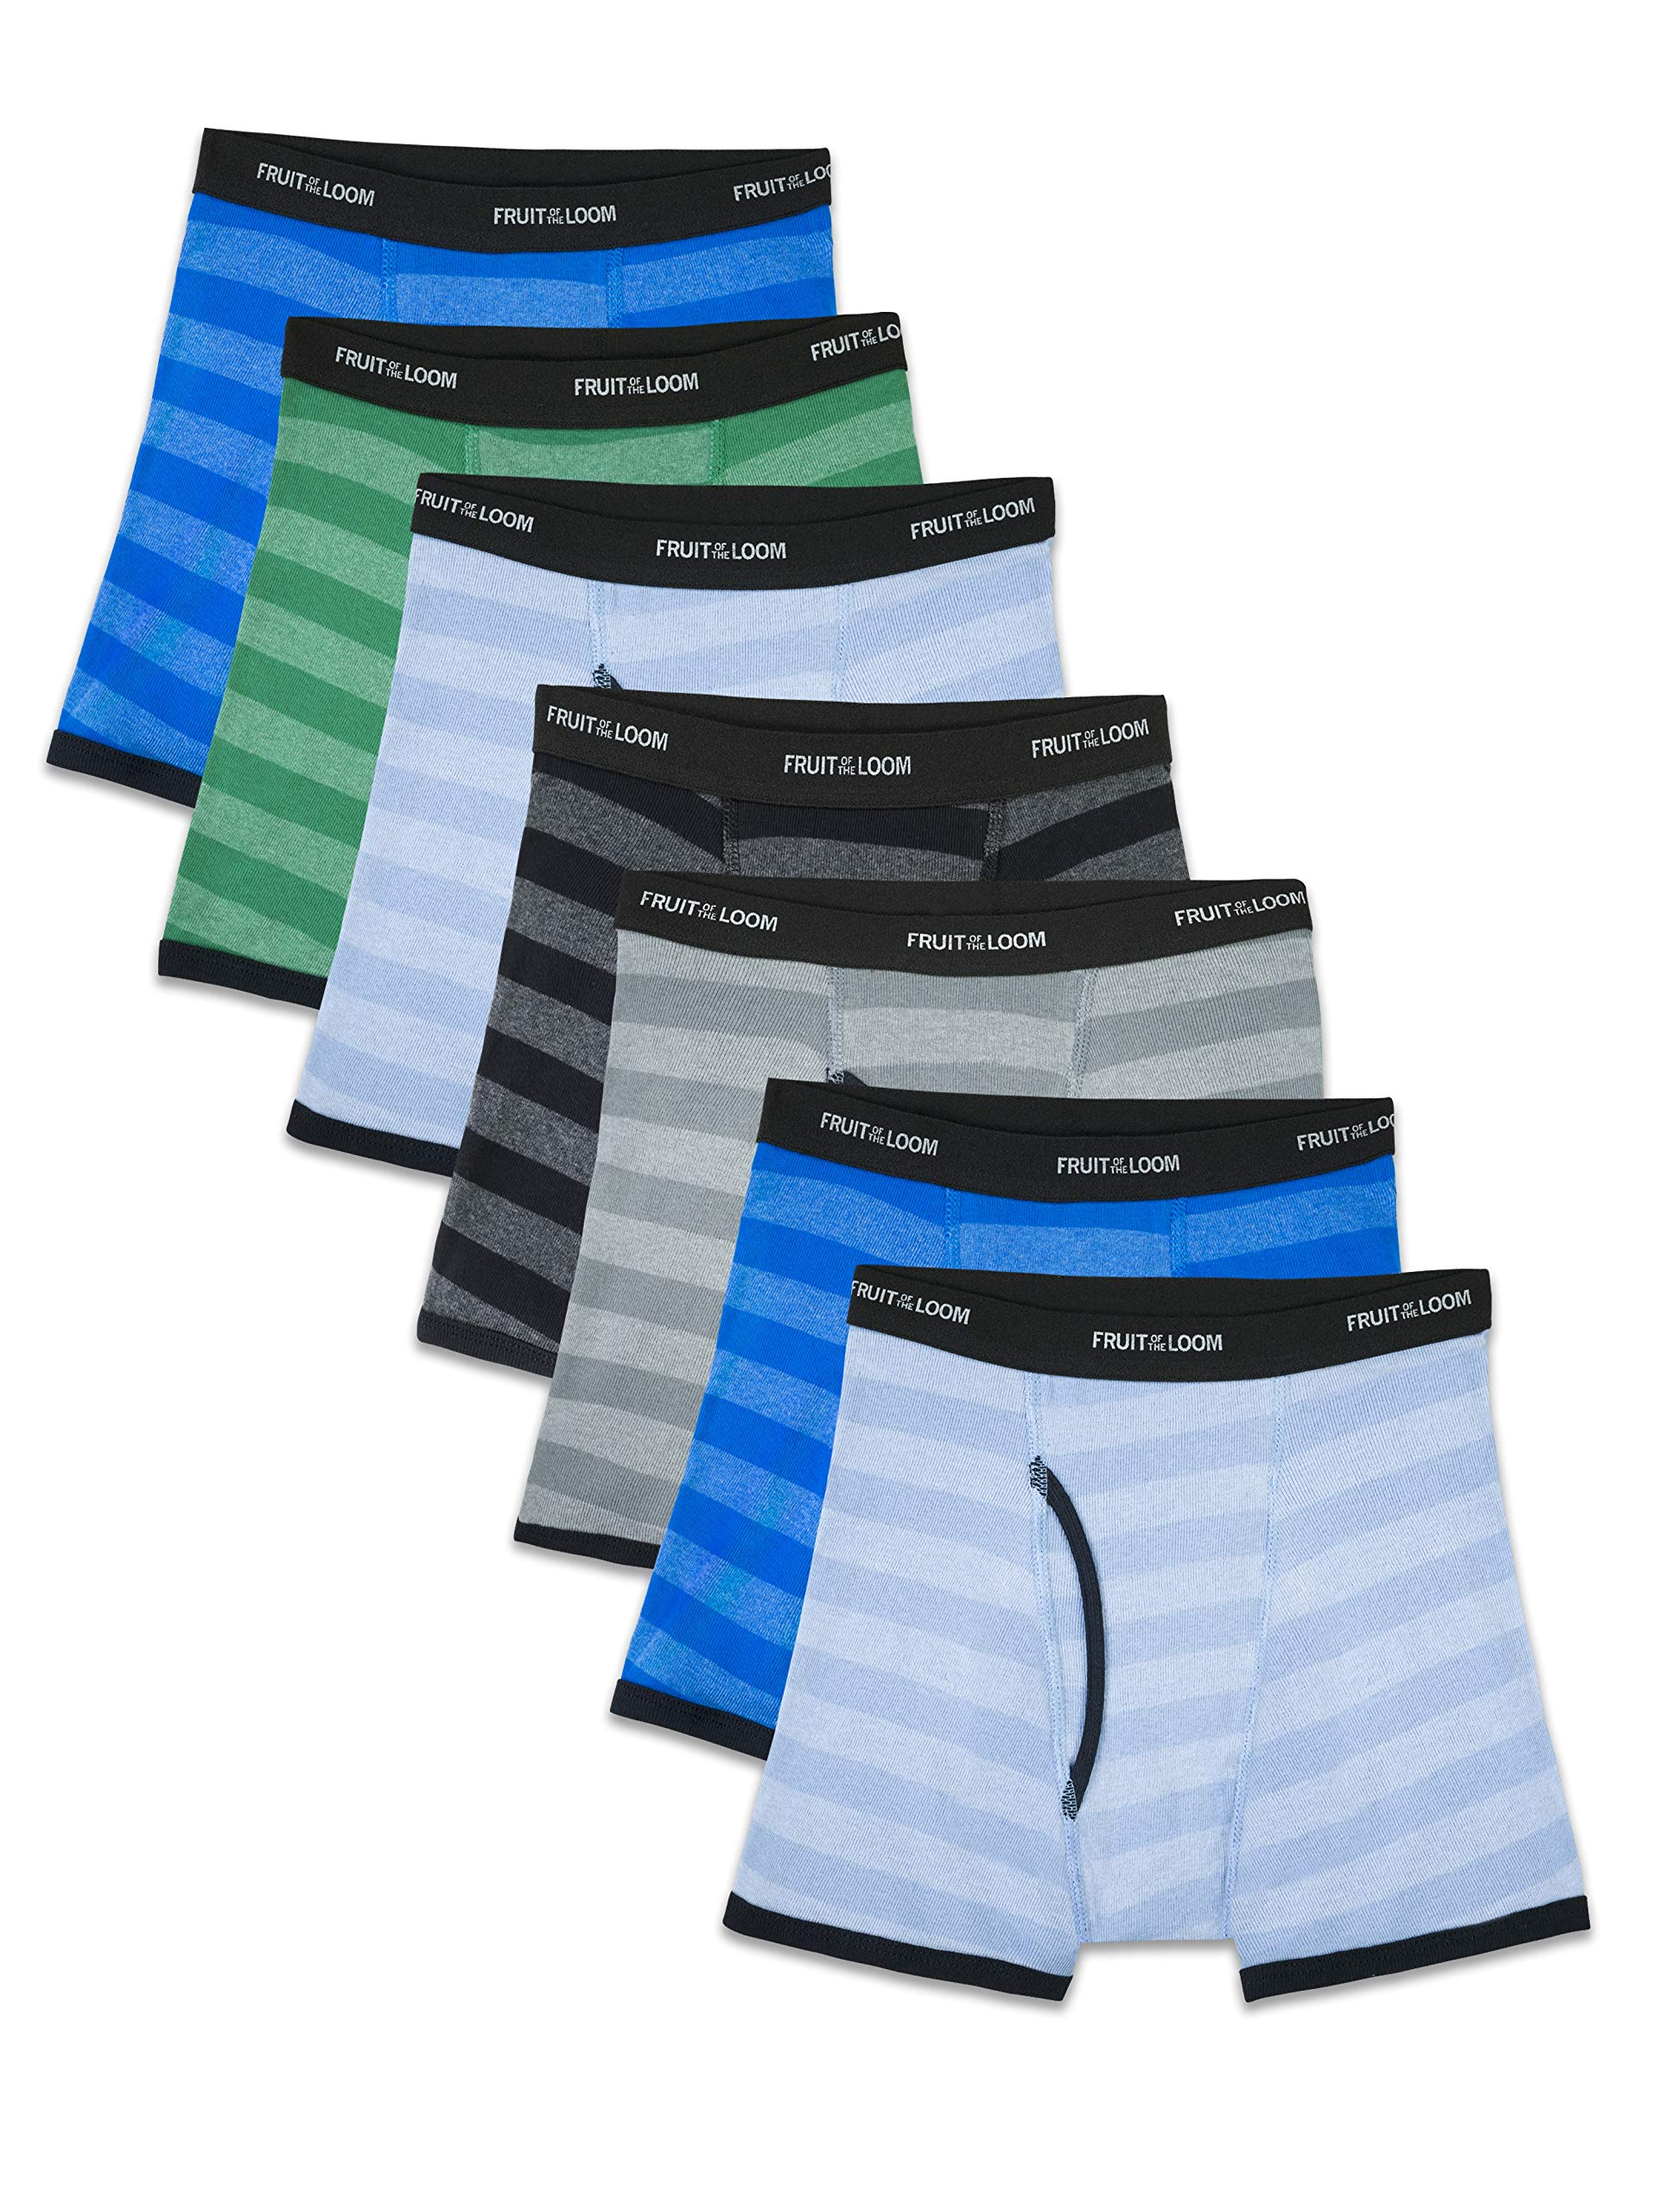 Fruit of the Loom Boys' Boxer Brief, Exposed and Covered Waistband, Stripes - Assorted (Pack of 7), Medium by Fruit of the Loom